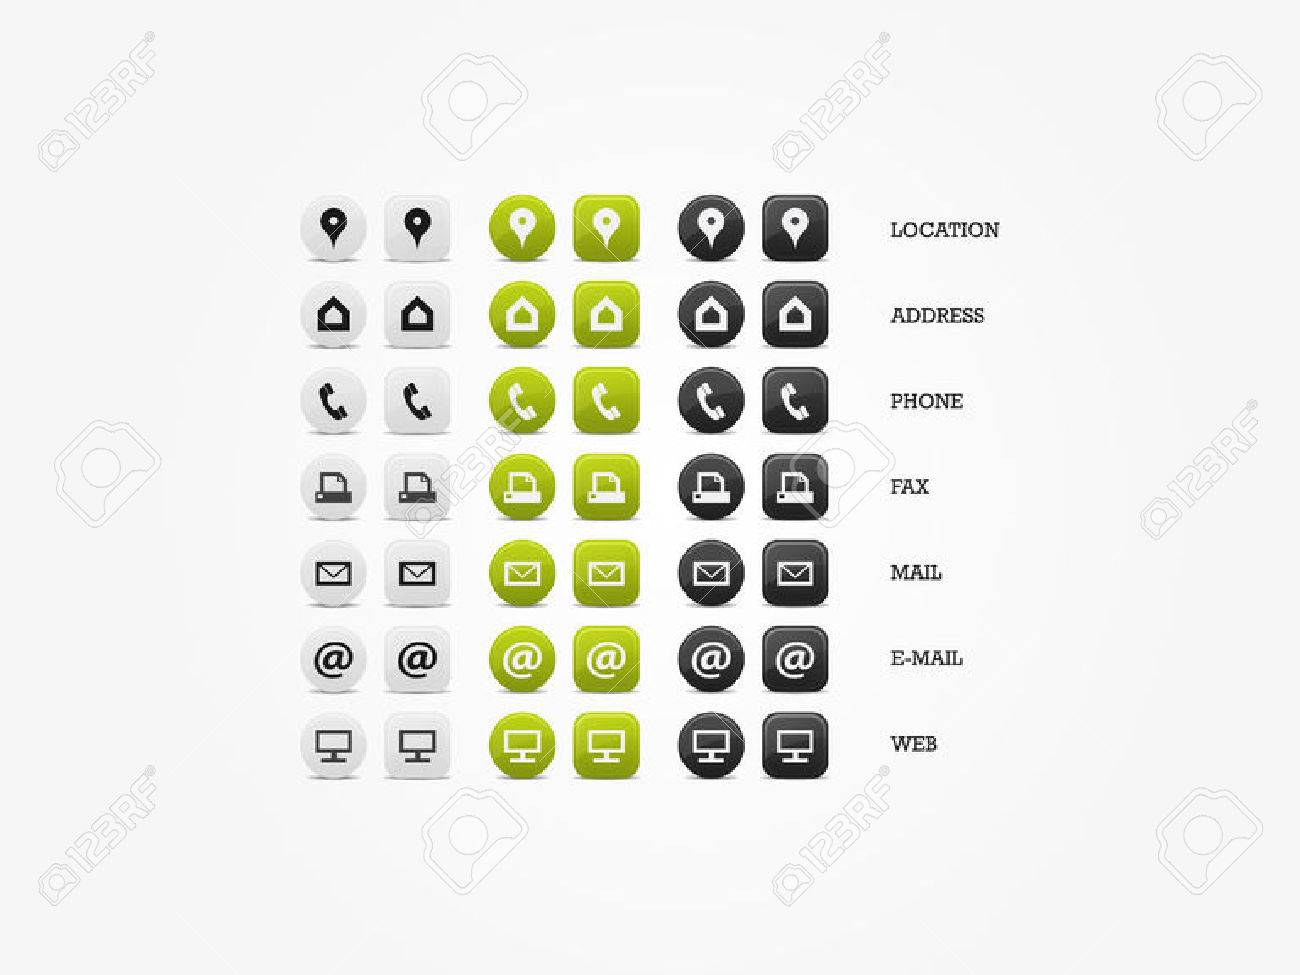 Multipurpose Business Card Icon Set of web icons for business, finance and communication - 31590500